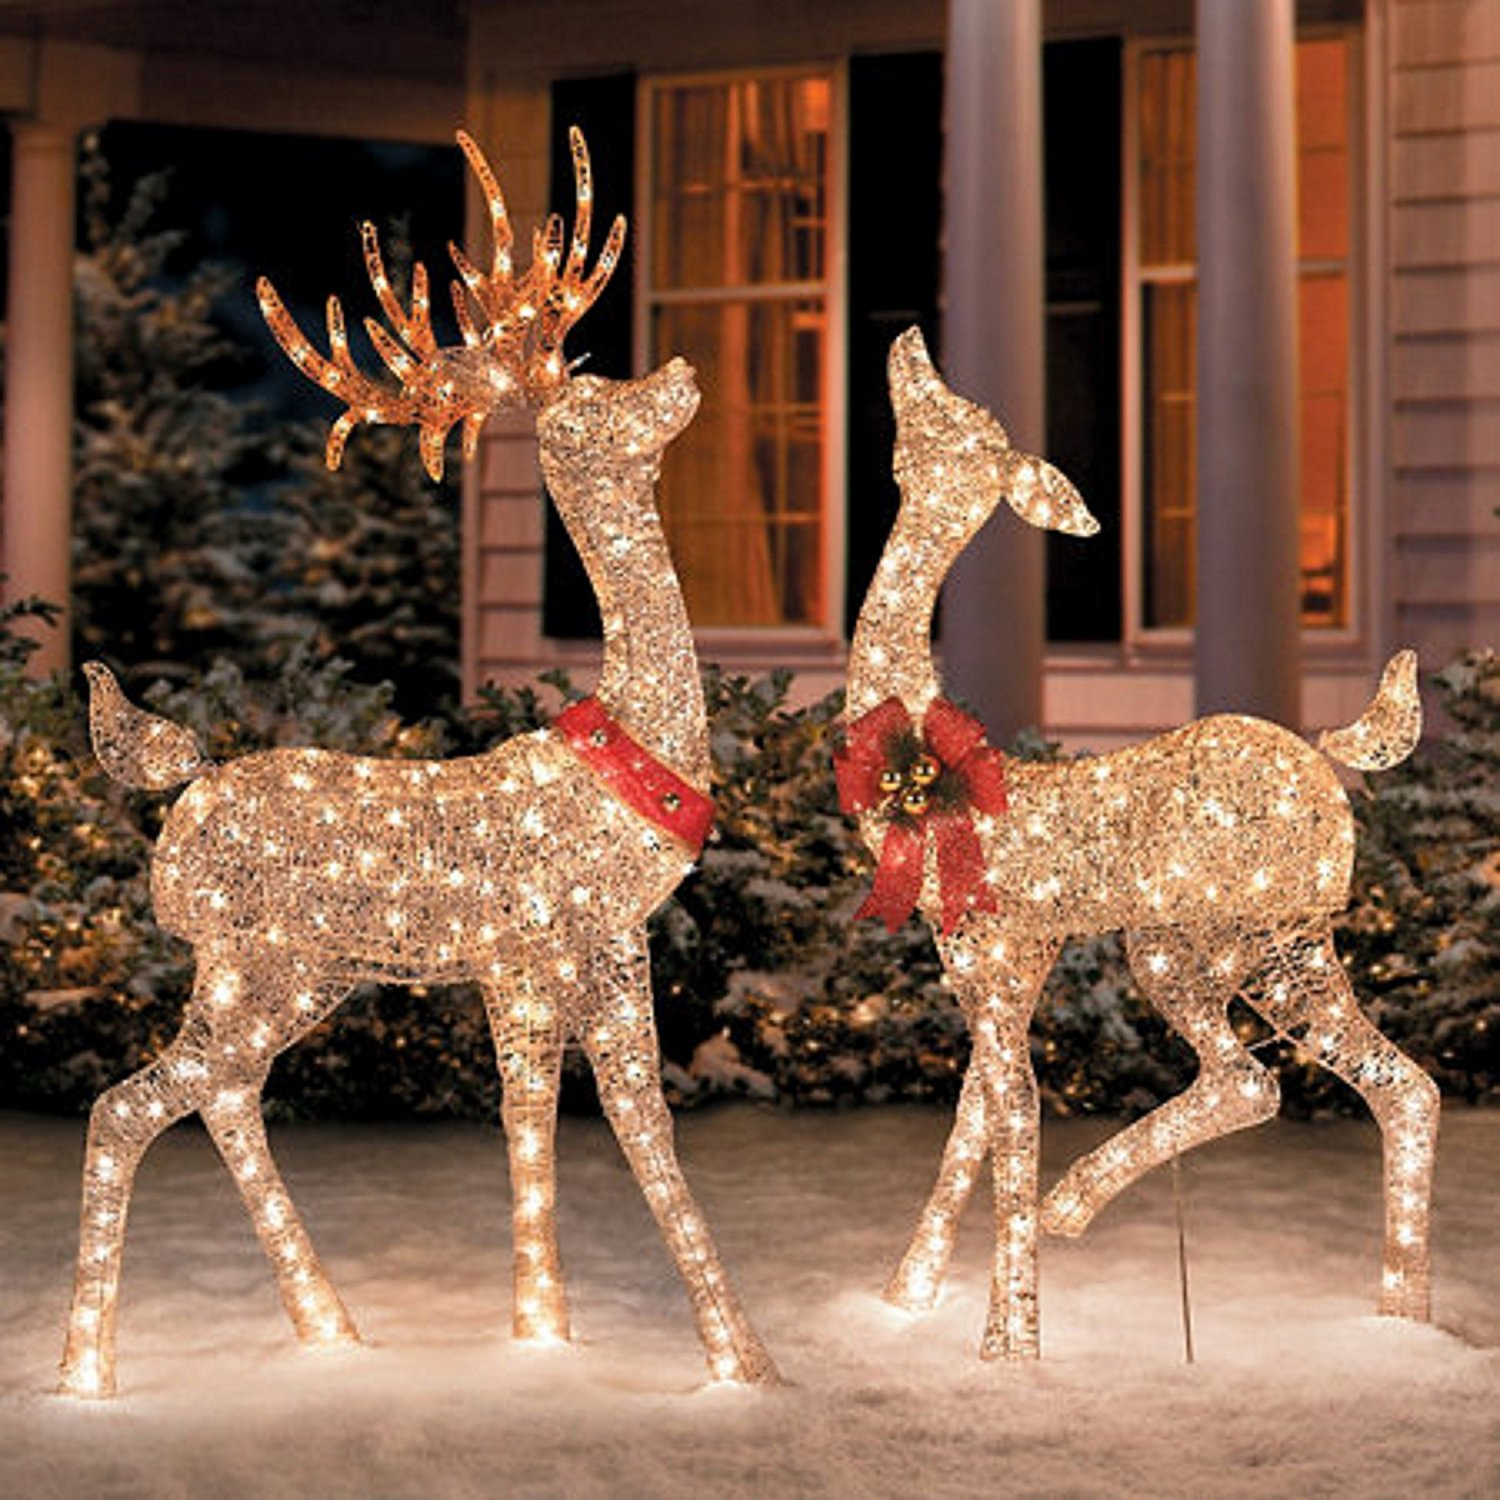 21 Christmas Outdoor Decorations, ensure it makes a visual impact - 101 Recycled Crafts